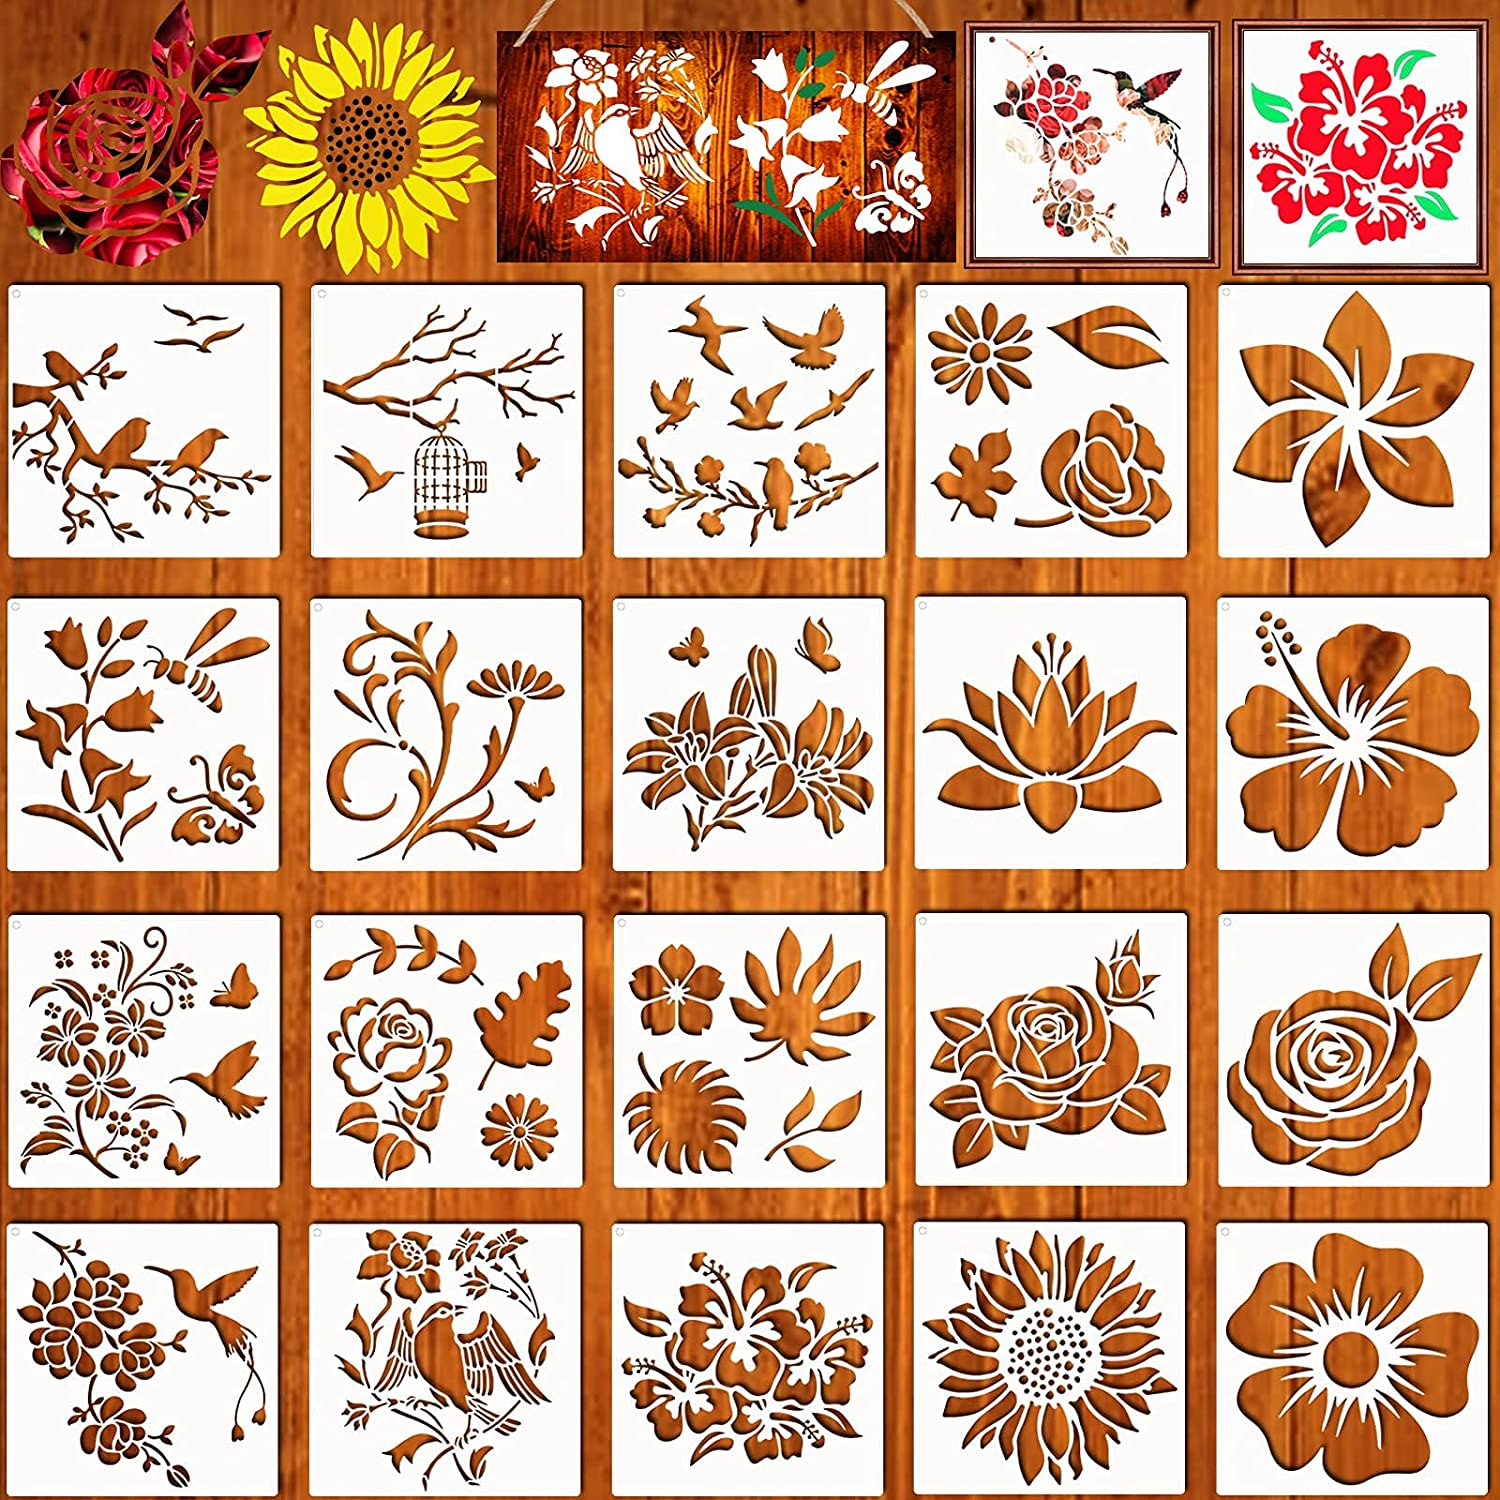 20 Pieces Flower Stencils for Painting On Wood Canvas, Reusable Art Rose Sunflower Bird Leaf Floral Stecil Drawing Template for Paint Nature Design Craft Decor Home Wall